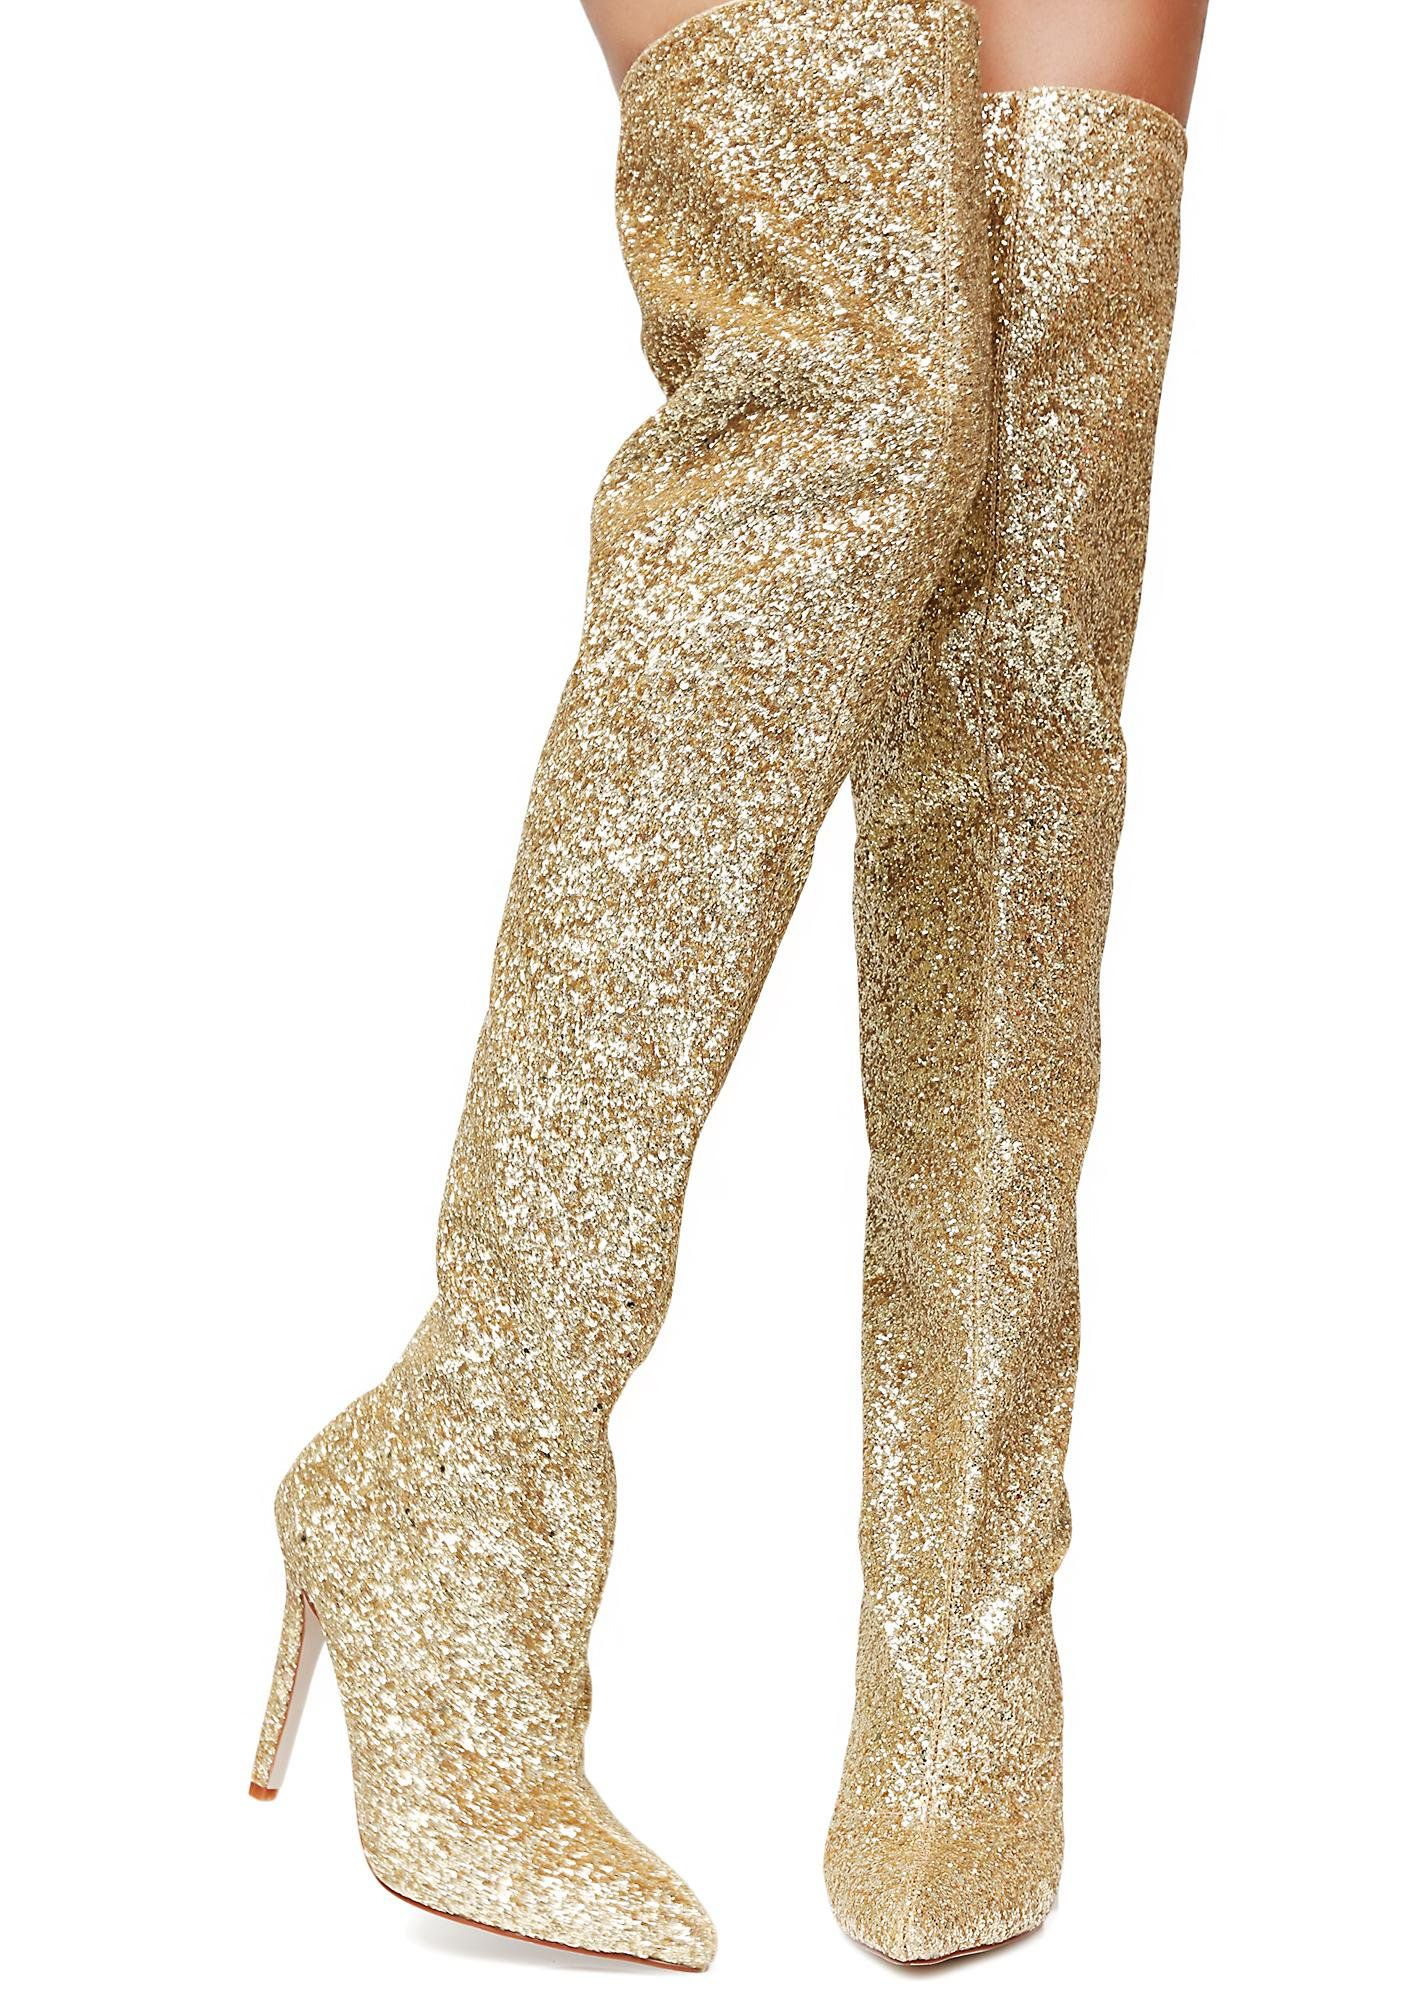 64355103d0 ... Glitter Thigh-High Boots cuz you luv to sparkle N' shine. Grab their  attention with these sparkly gold boots that have stiletto heels and pointed  toes.